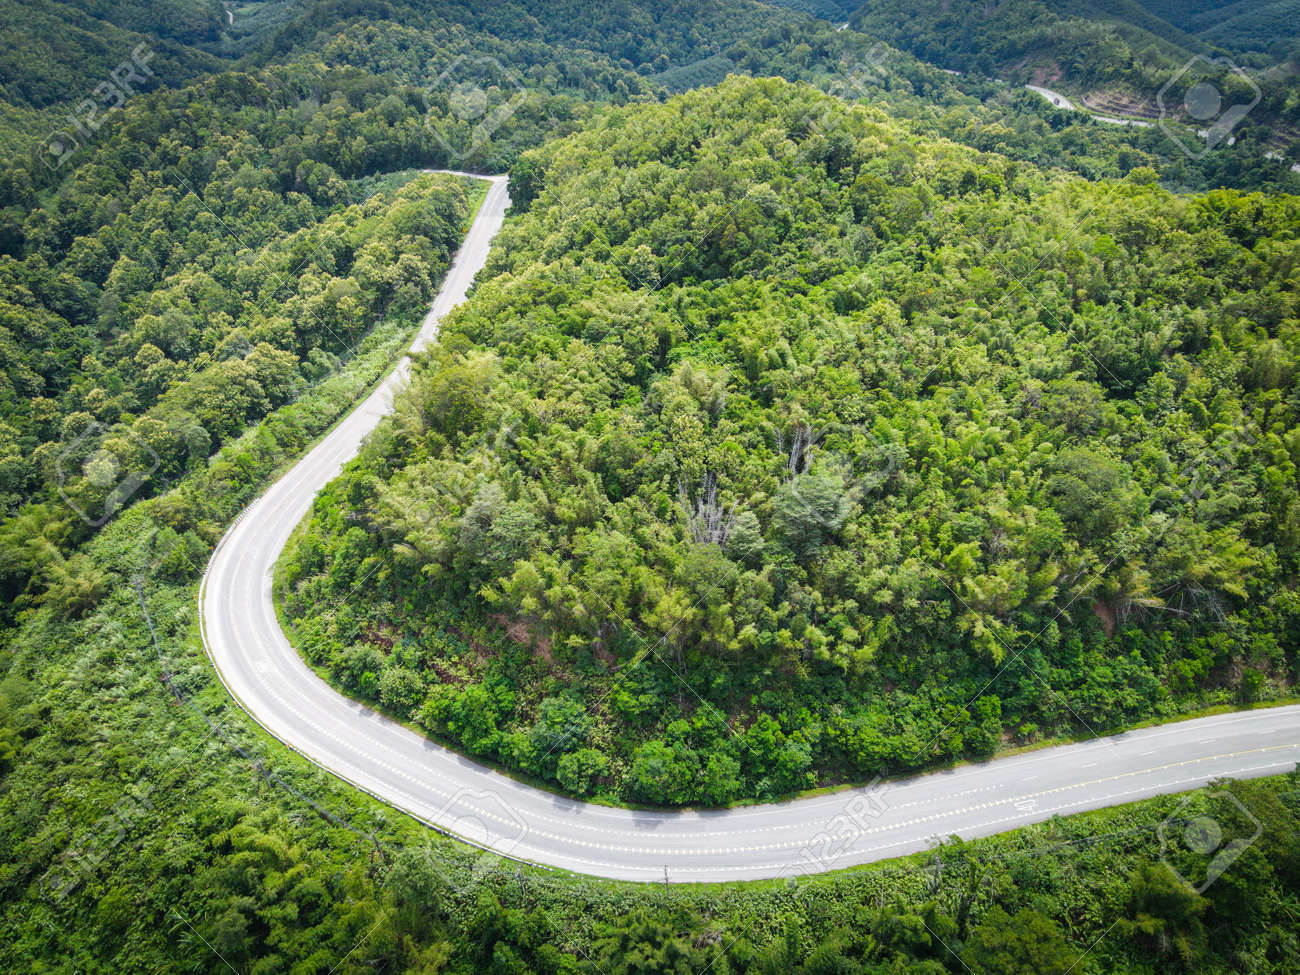 Aerial view forest nature with car on the road on the mountain green tree, Top view road curve from above, Bird eye view road through mountain the green forest beautiful fresh environment - 173248649